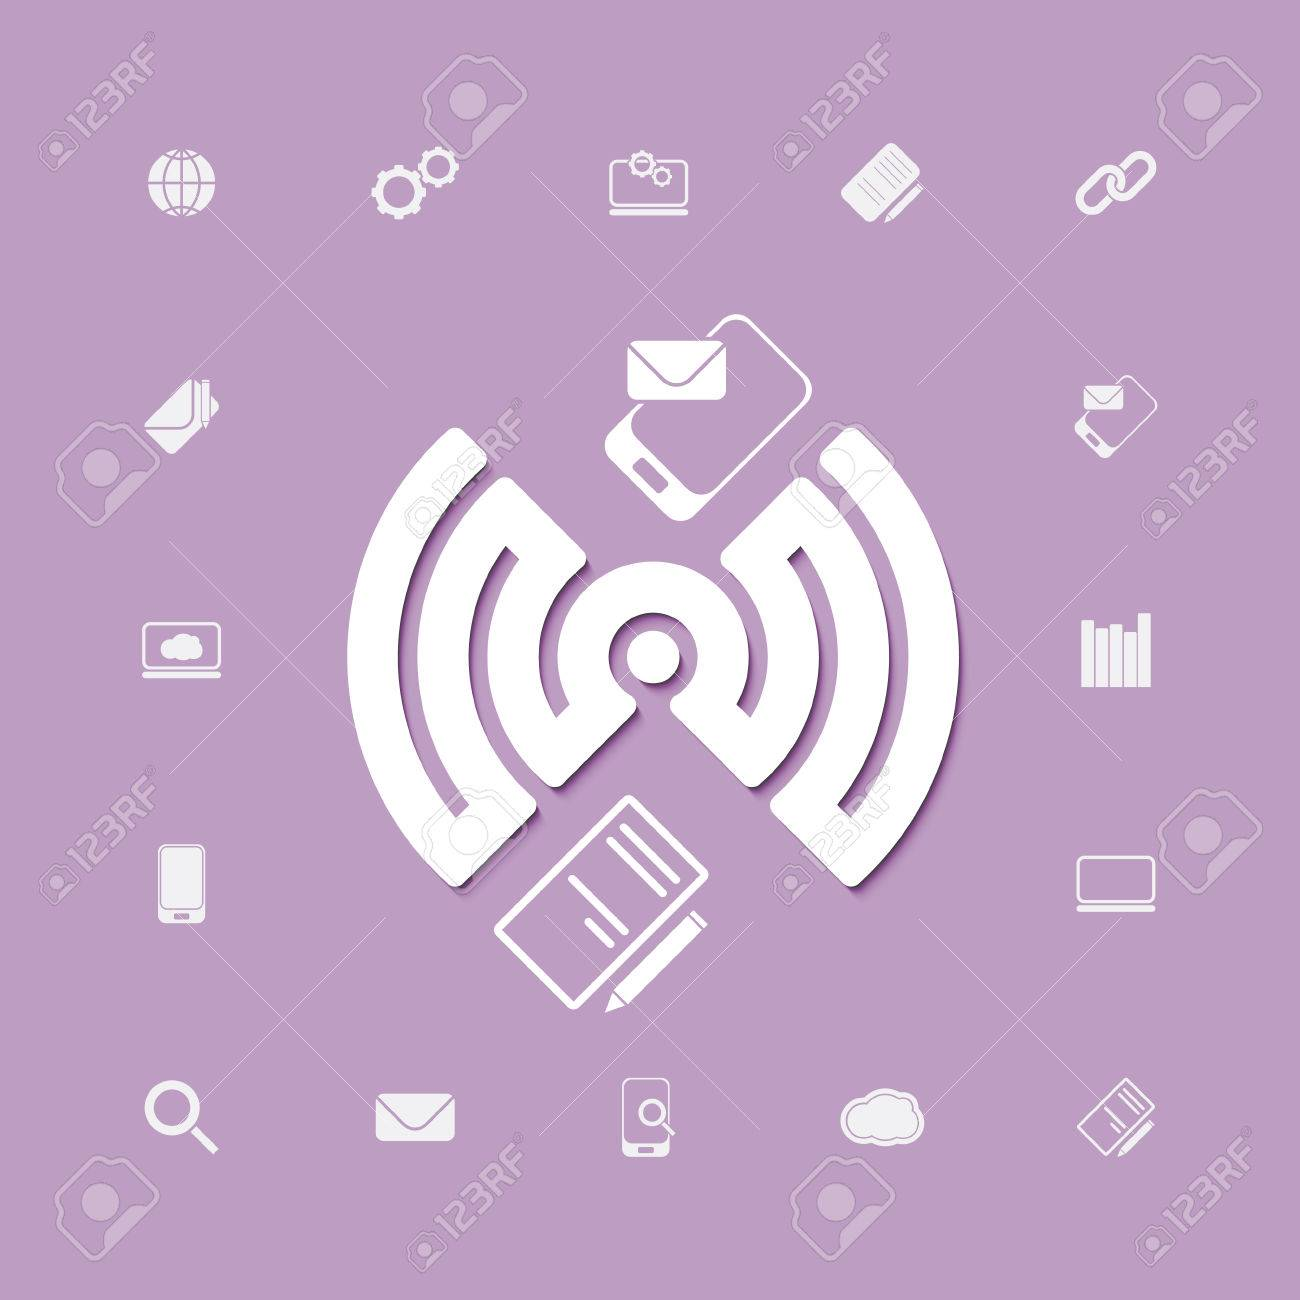 compose and send via wifi connection icons vector web design